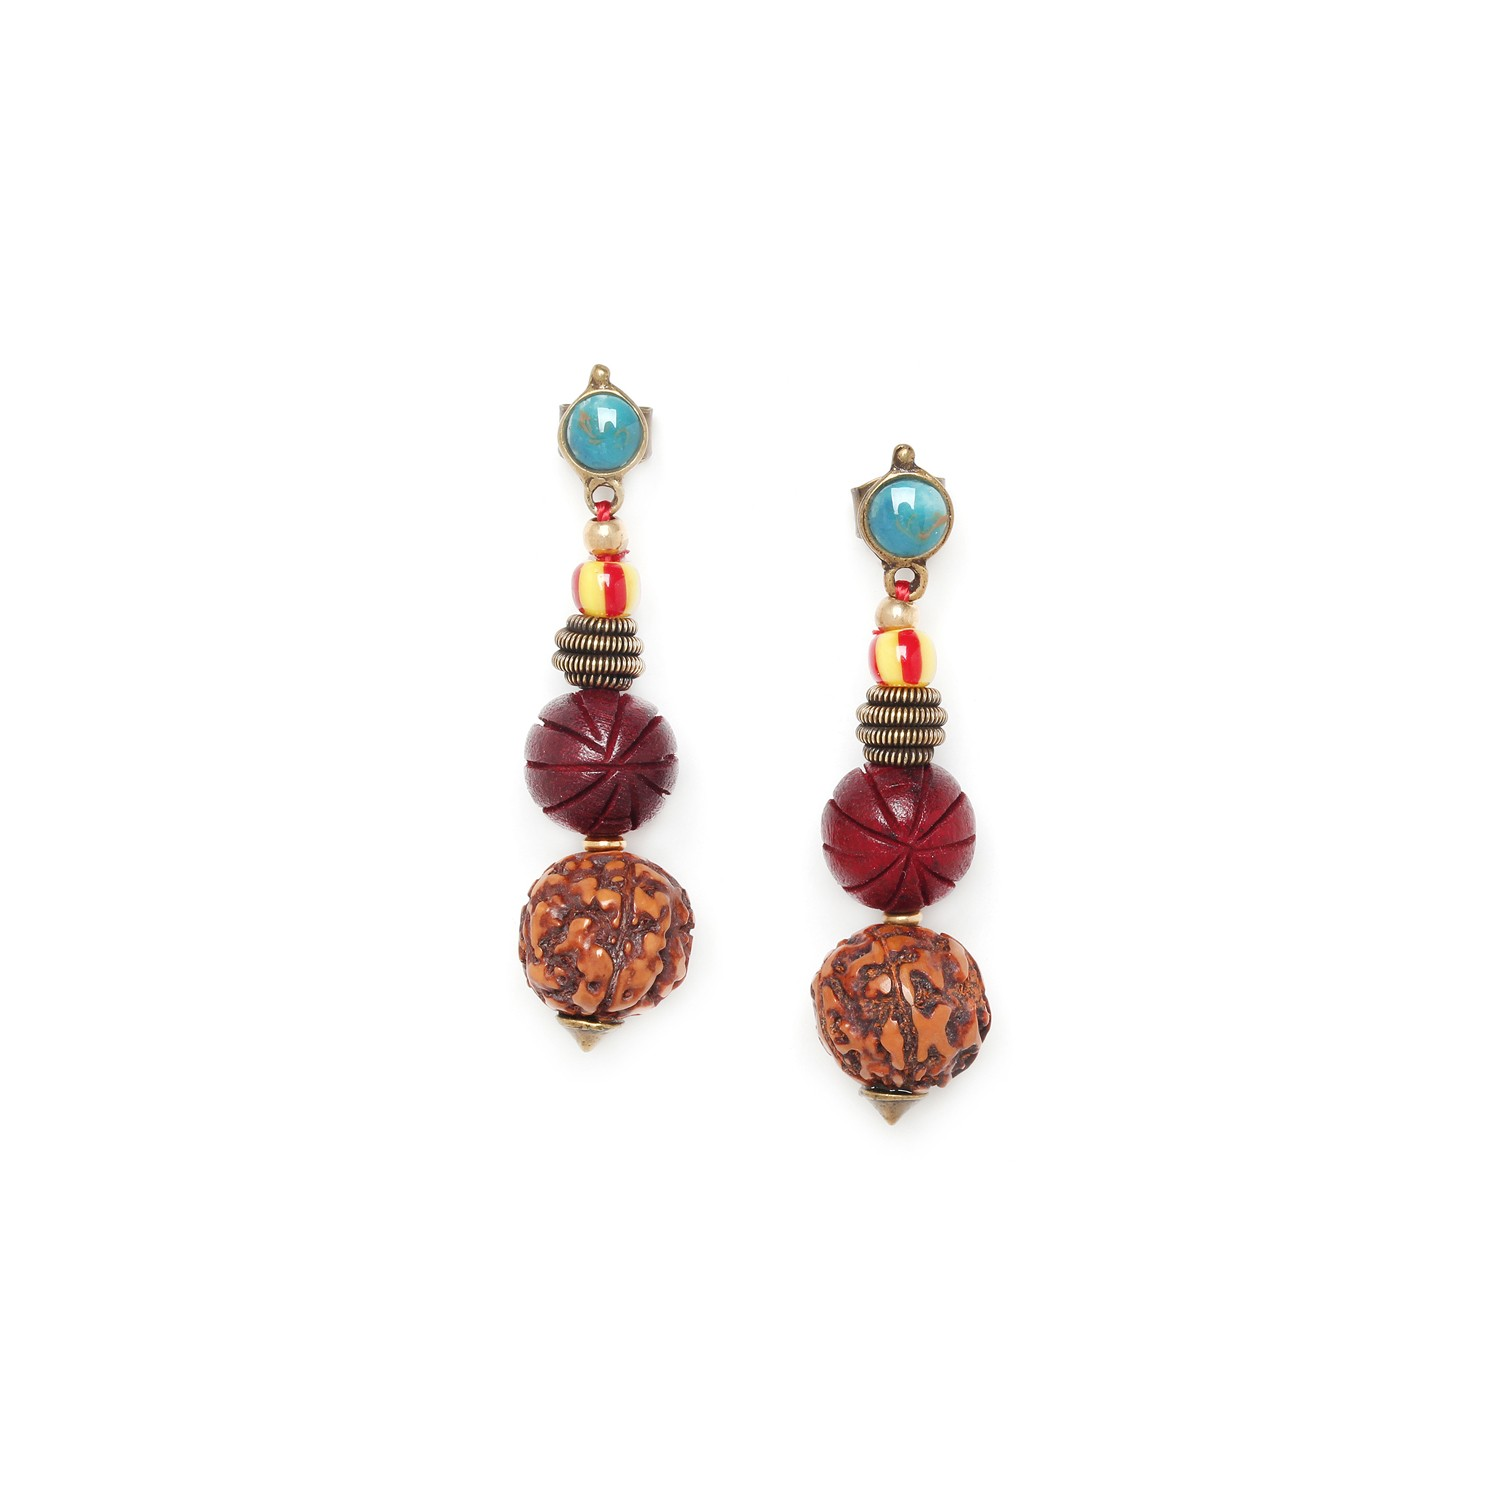 ULUWATU graduated earrings